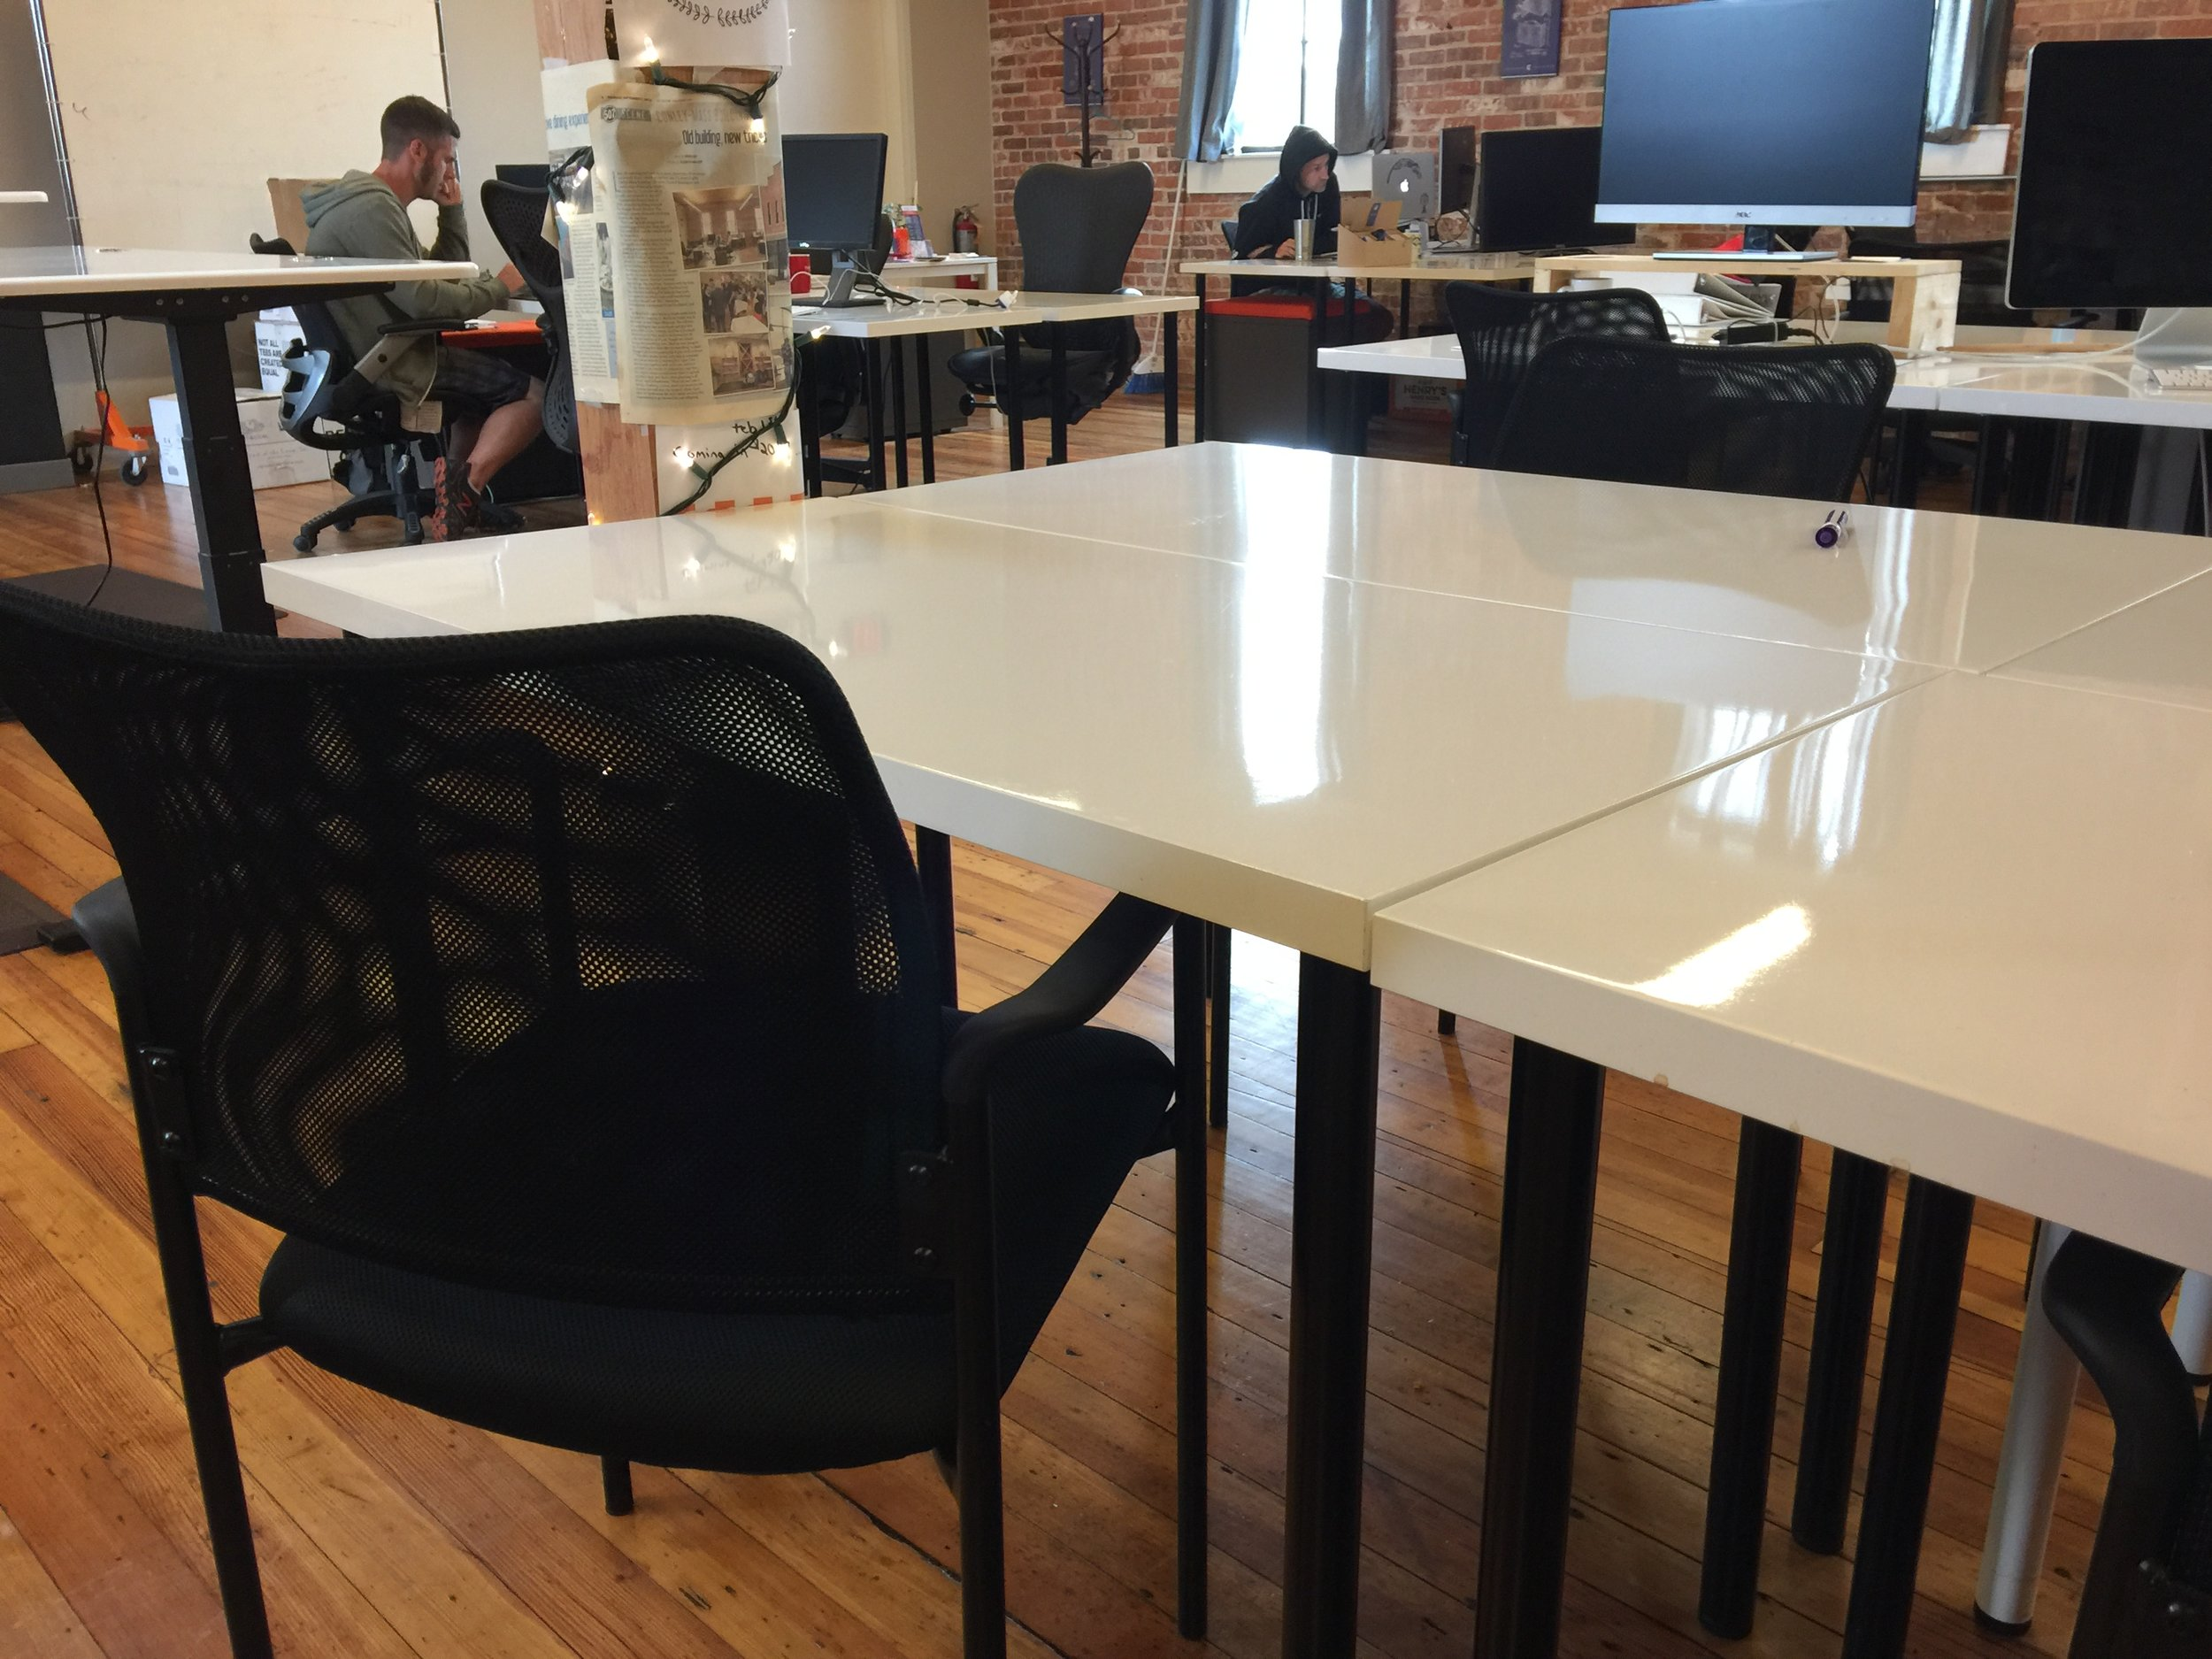 Starter Desk - $110/month• Use of a hot desk at Collider 10 hours per week• 24/7 Access to Collider• Access to Quiet Rooms and Conference Rooms• Access to private Slack channel for members